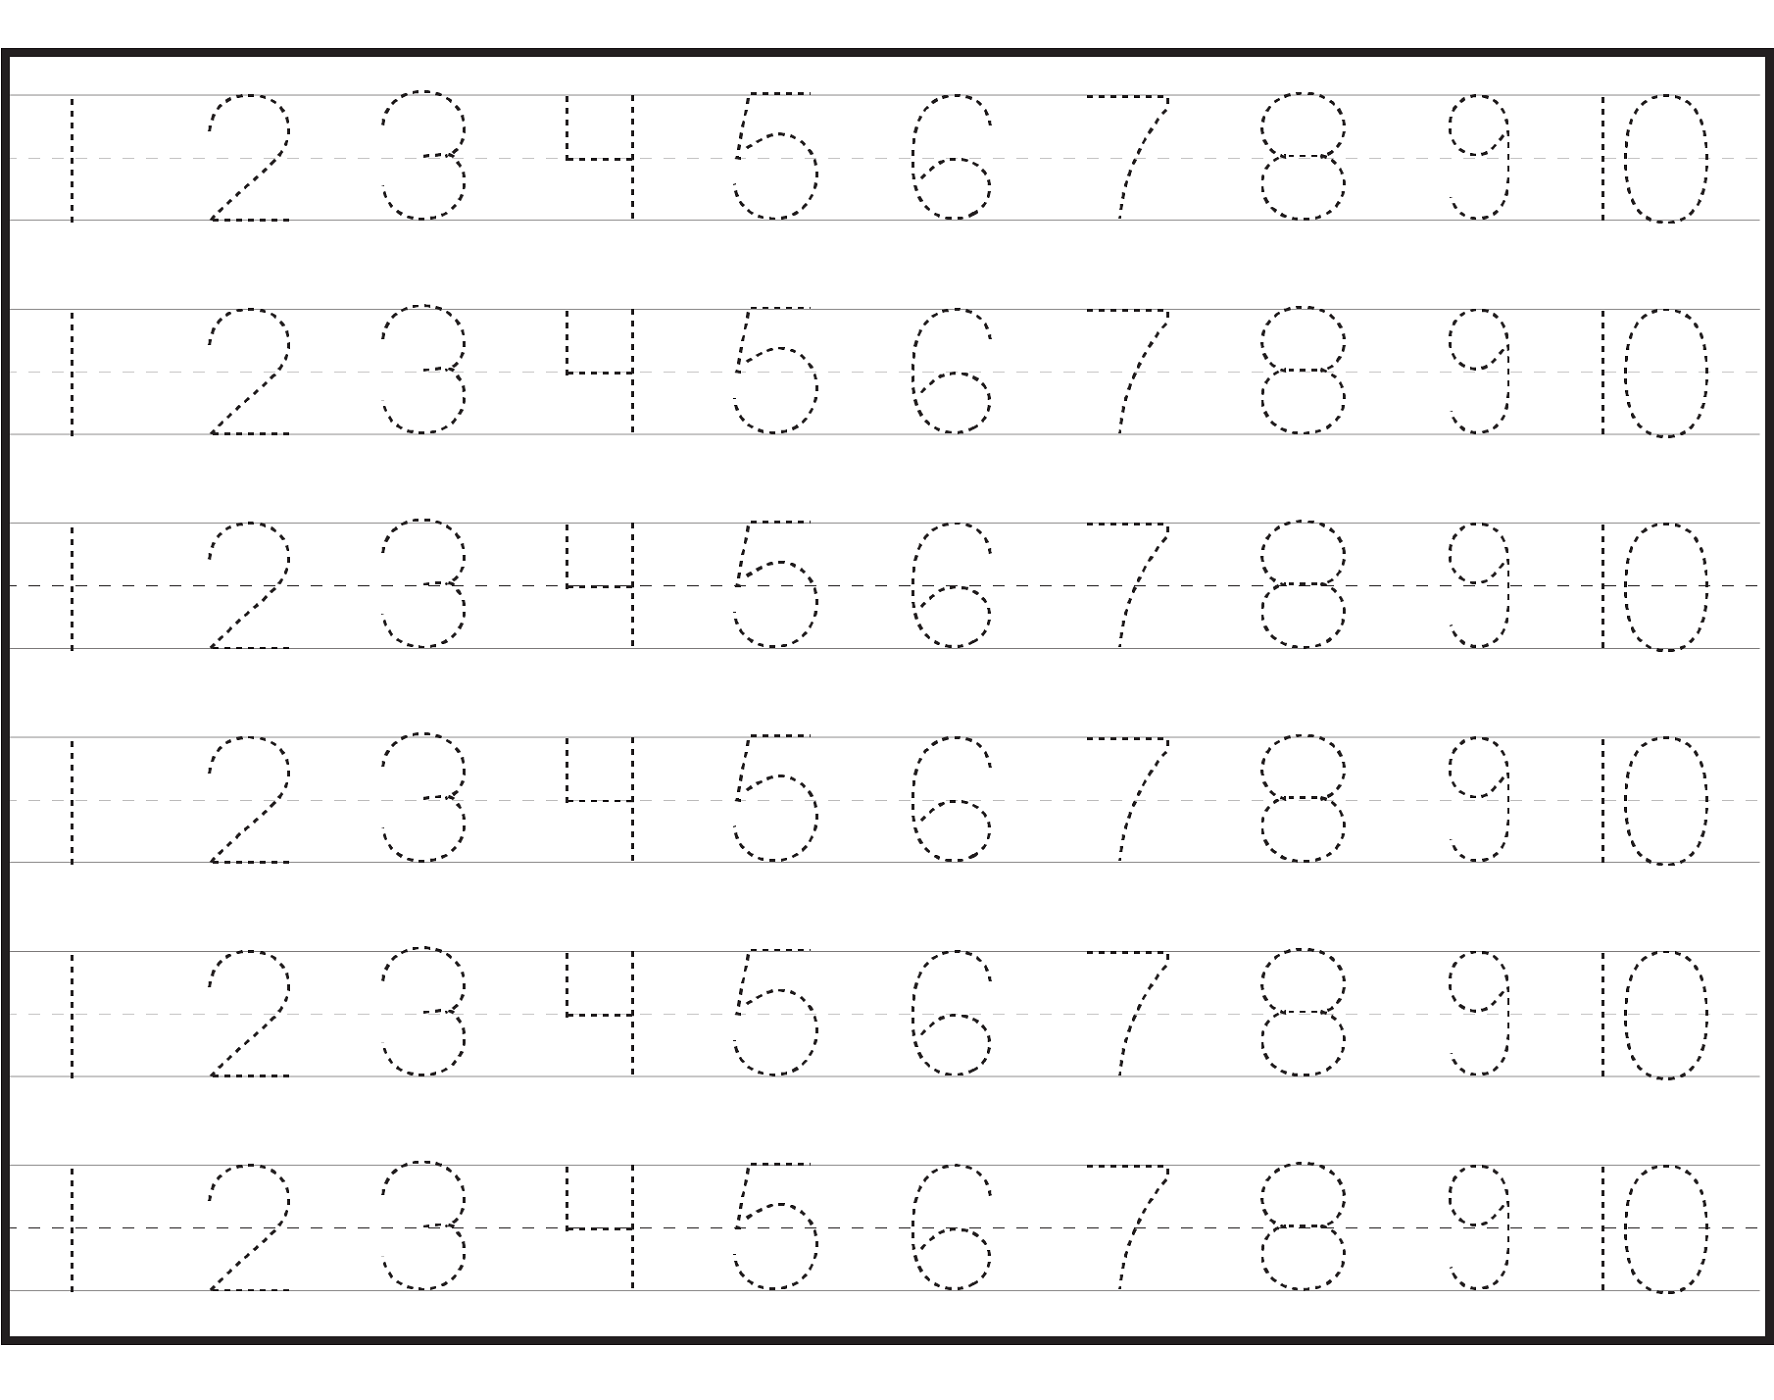 Worksheet Worksheets For Prek worksheet for pre k vintagegrn worksheets number activity shelter